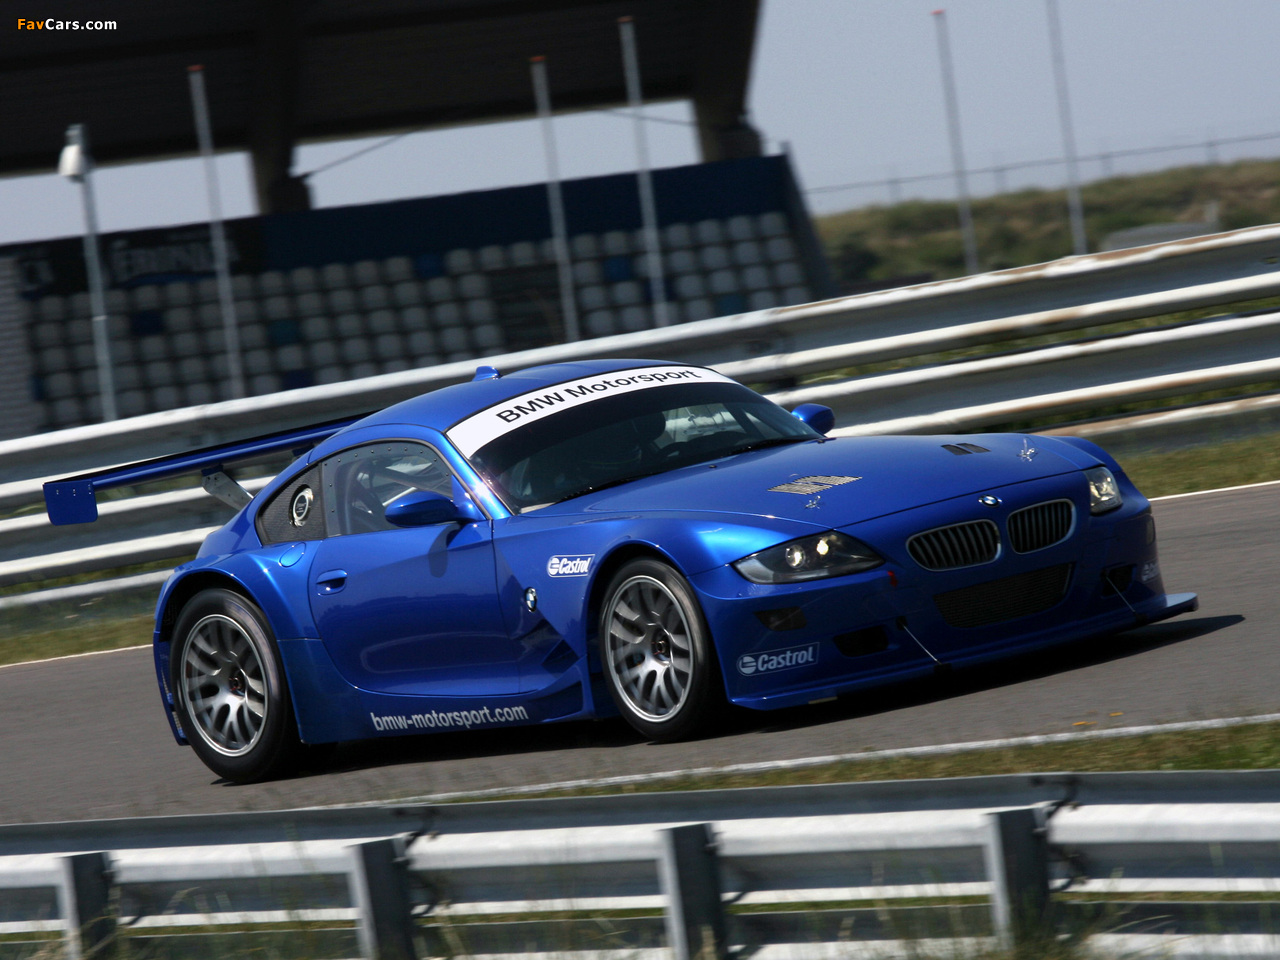 Photos Of Bmw Z4 M Coupe Race Car E85 2006 09 1280x960